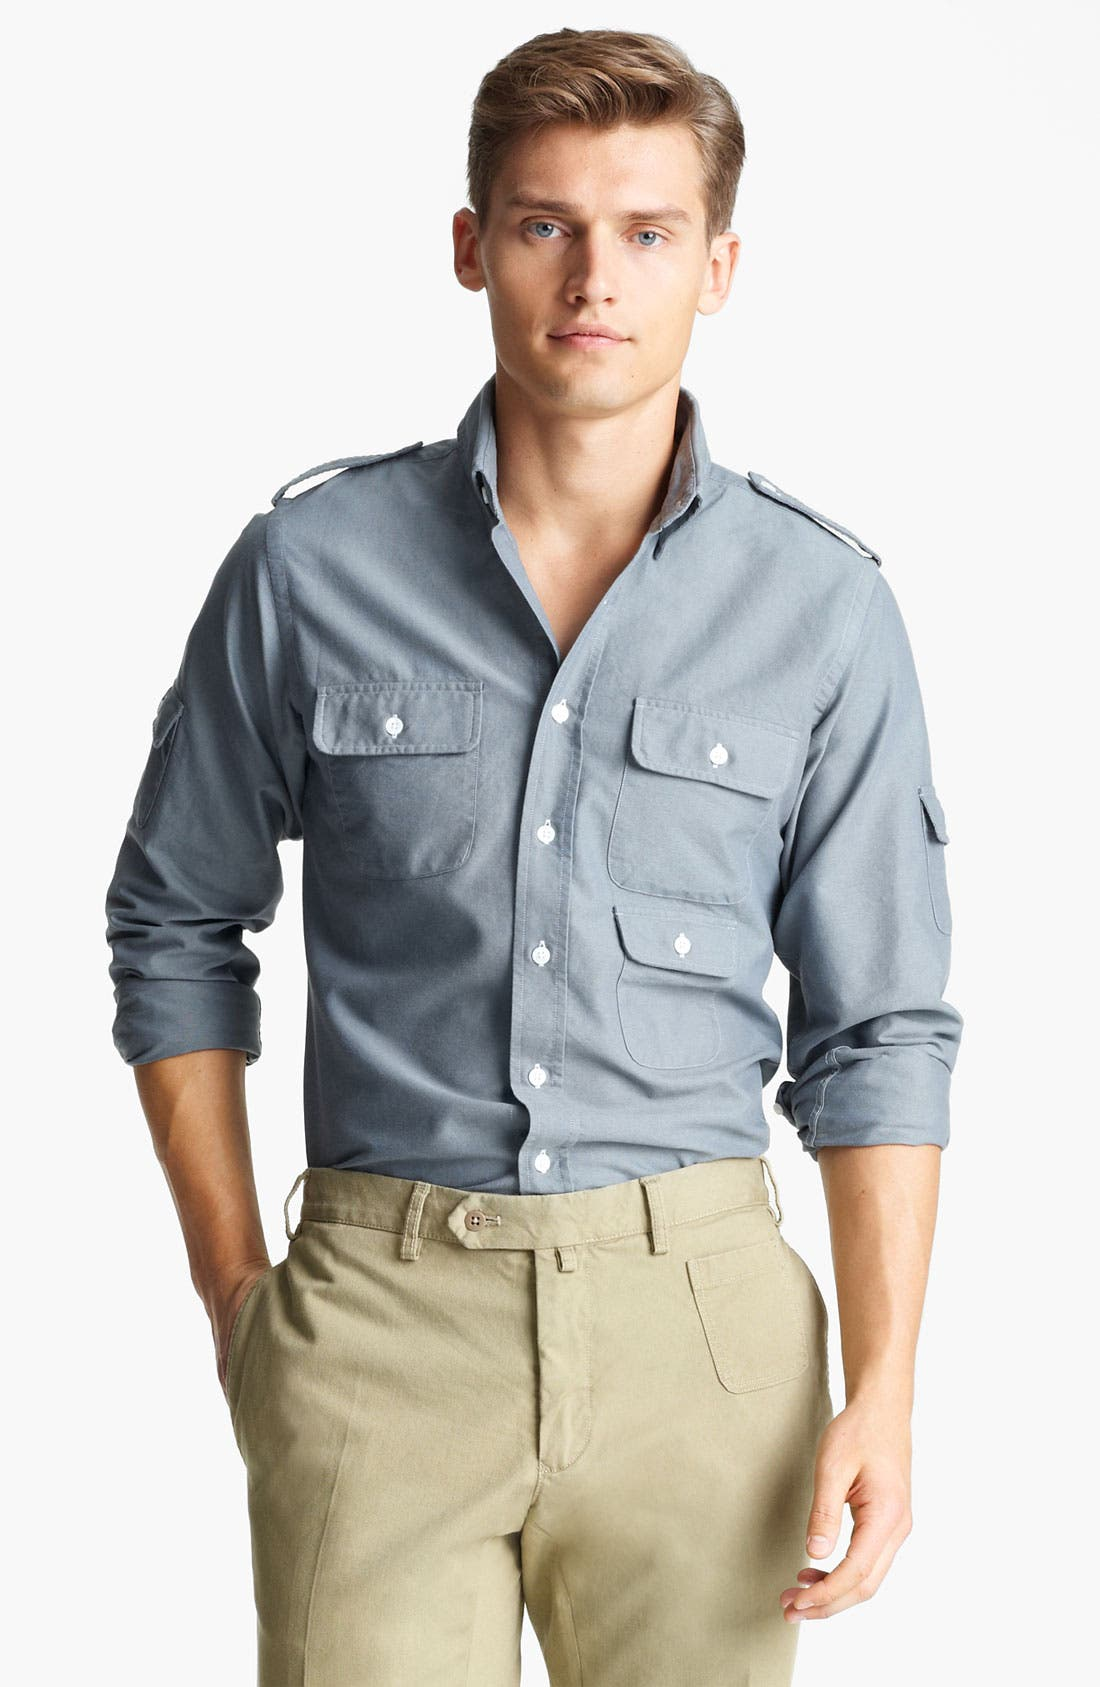 Main Image - Gant by Michael Bastian Multi Pocket Woven Shirt